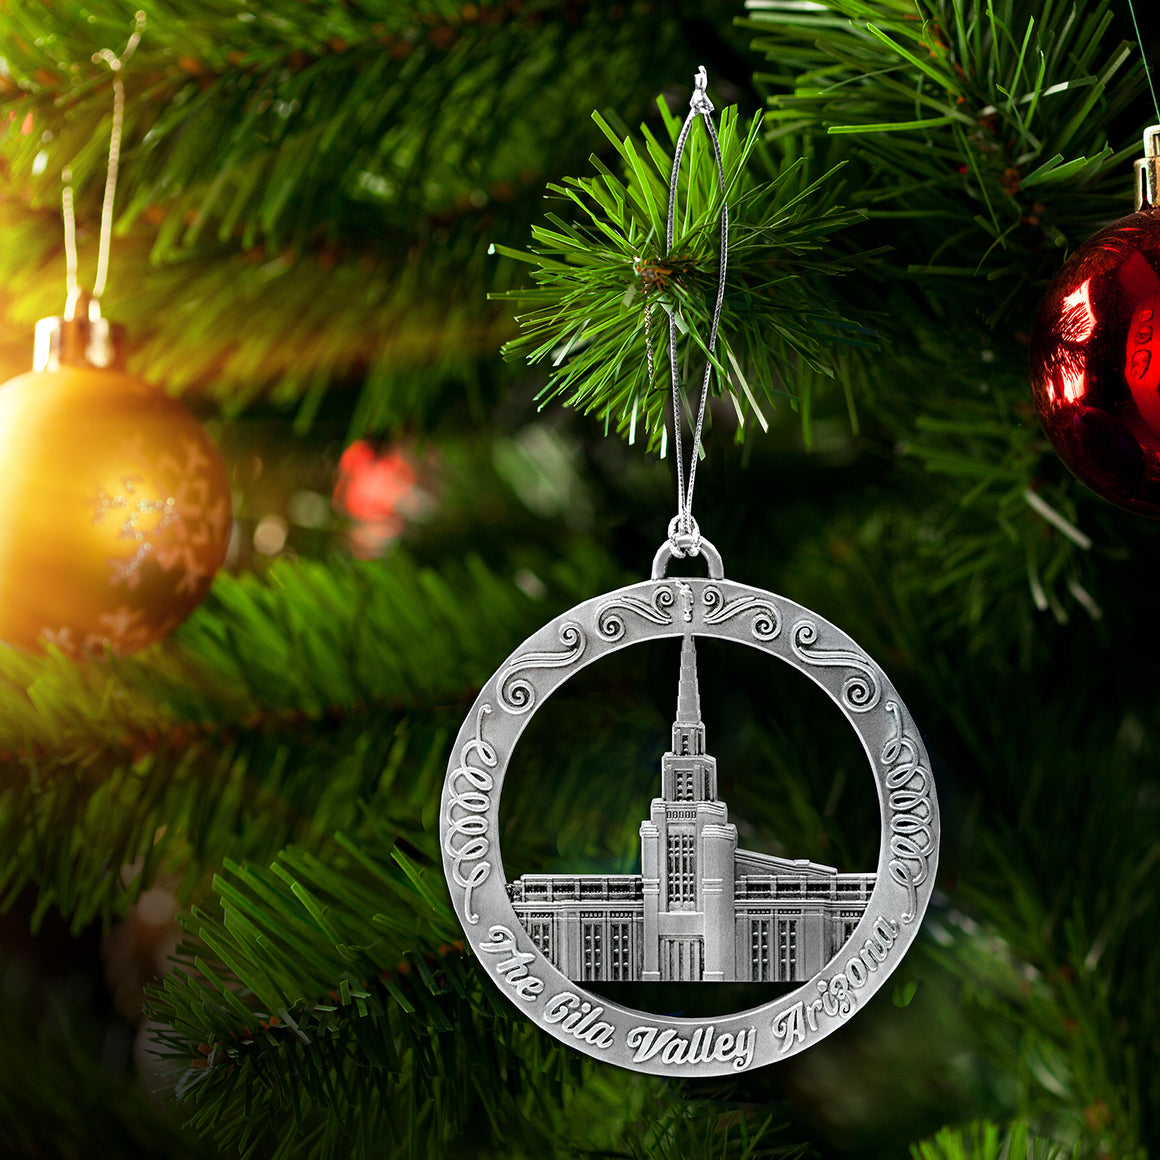 The Gila Valley Arizona Temple Ornament